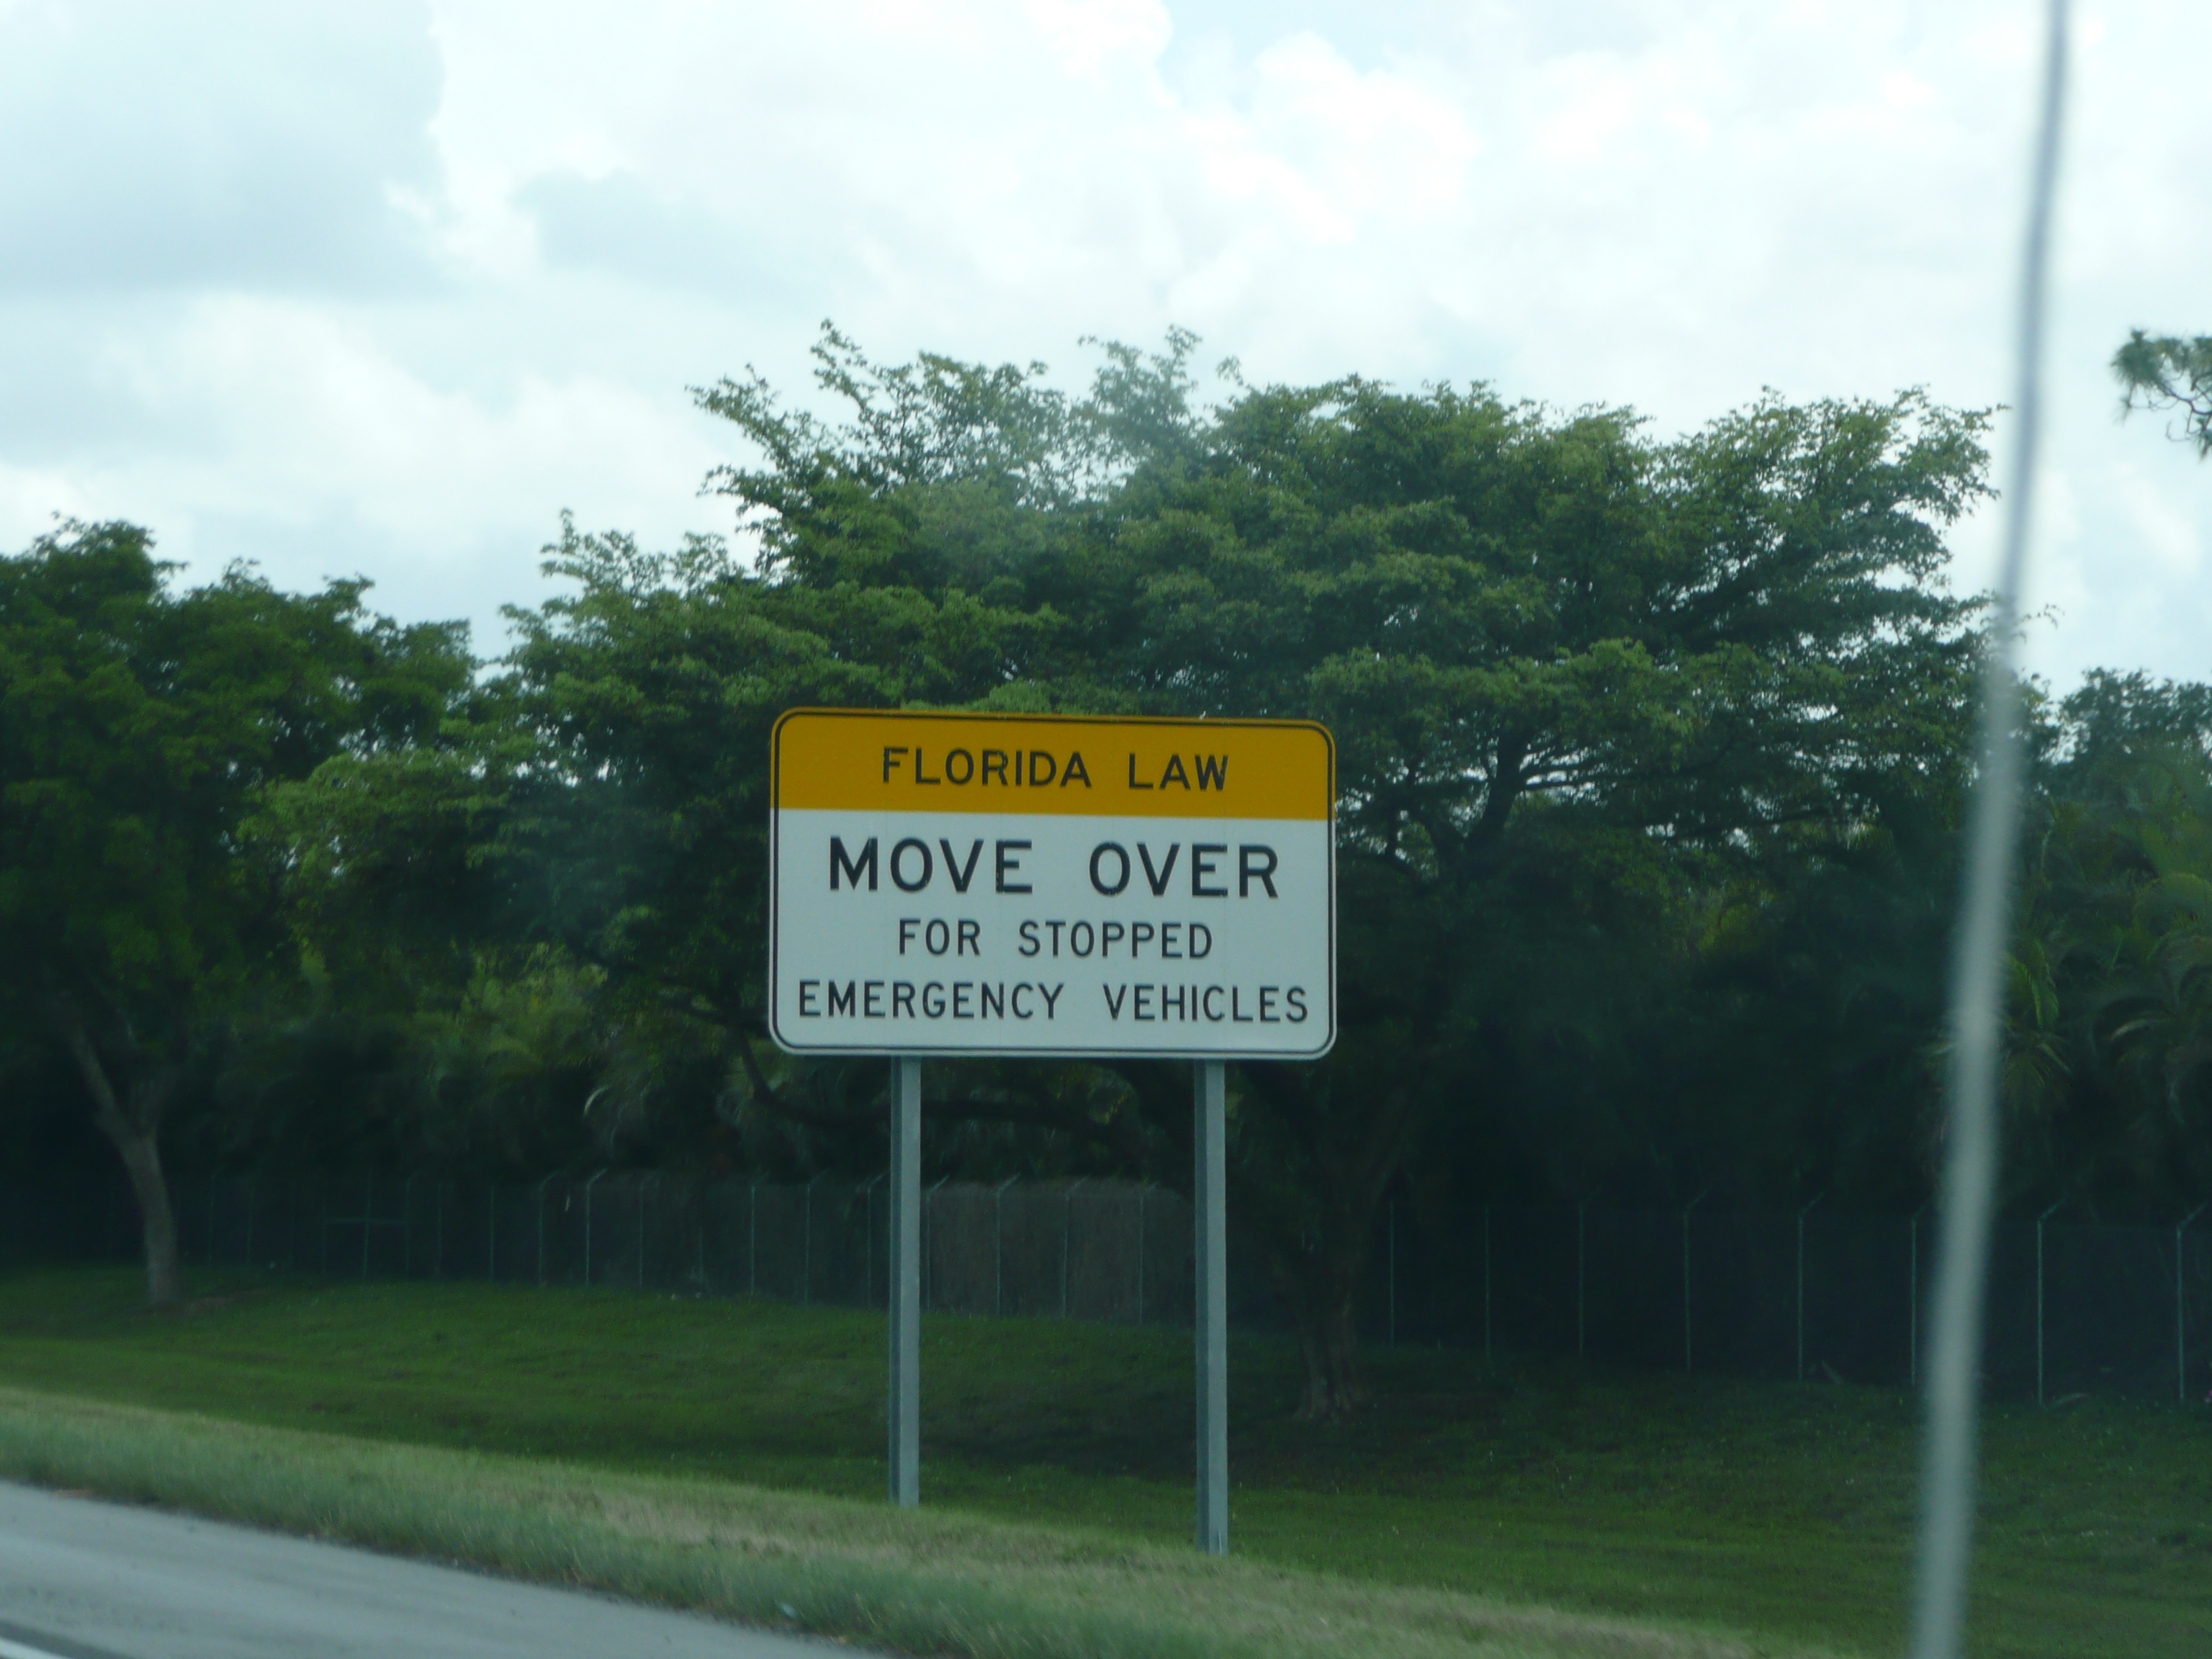 Move Over Traffic Law